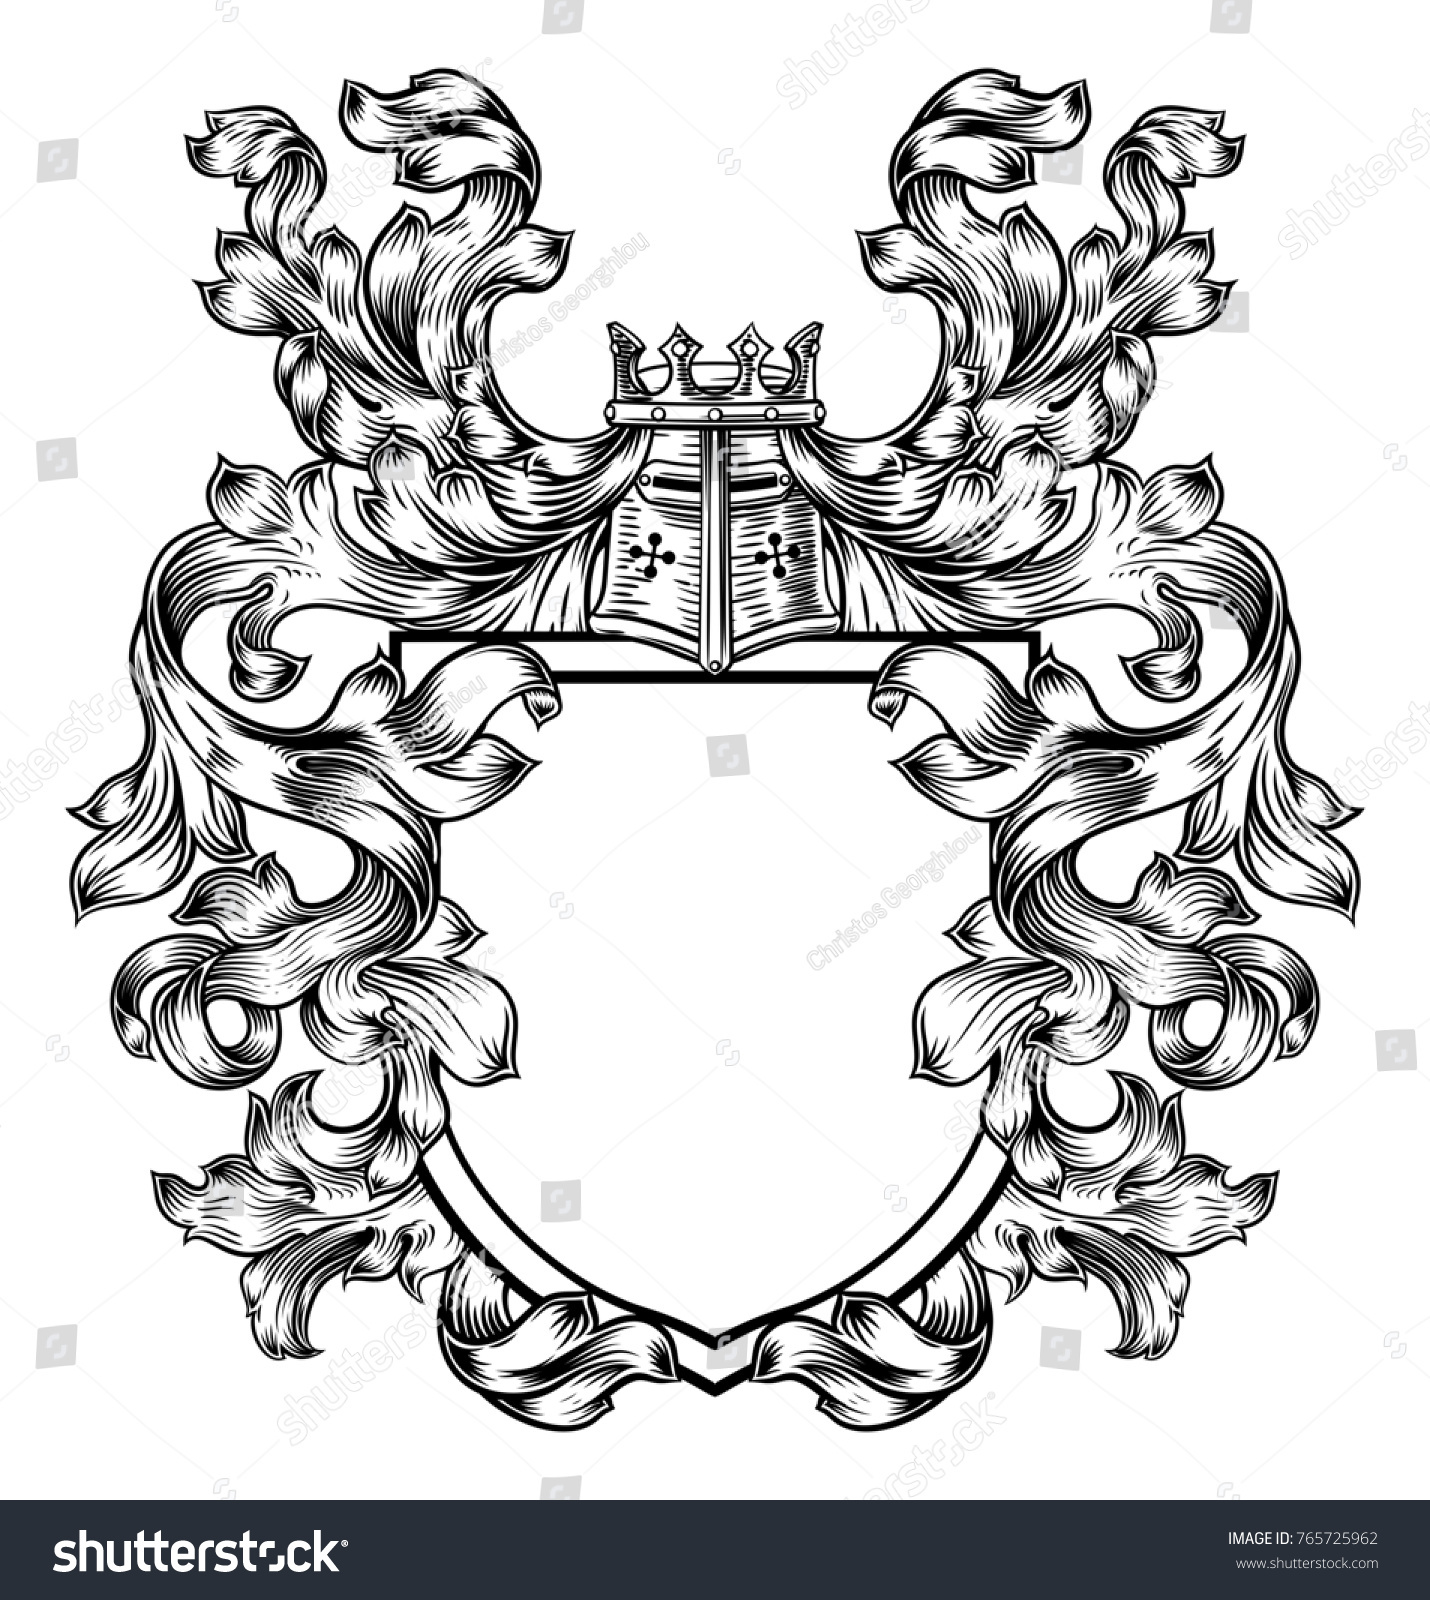 Coat arms medieval heraldic crest shield stock illustration a coat of arms medieval heraldic crest shield emblem featuring a knights great helm helmet and biocorpaavc Gallery